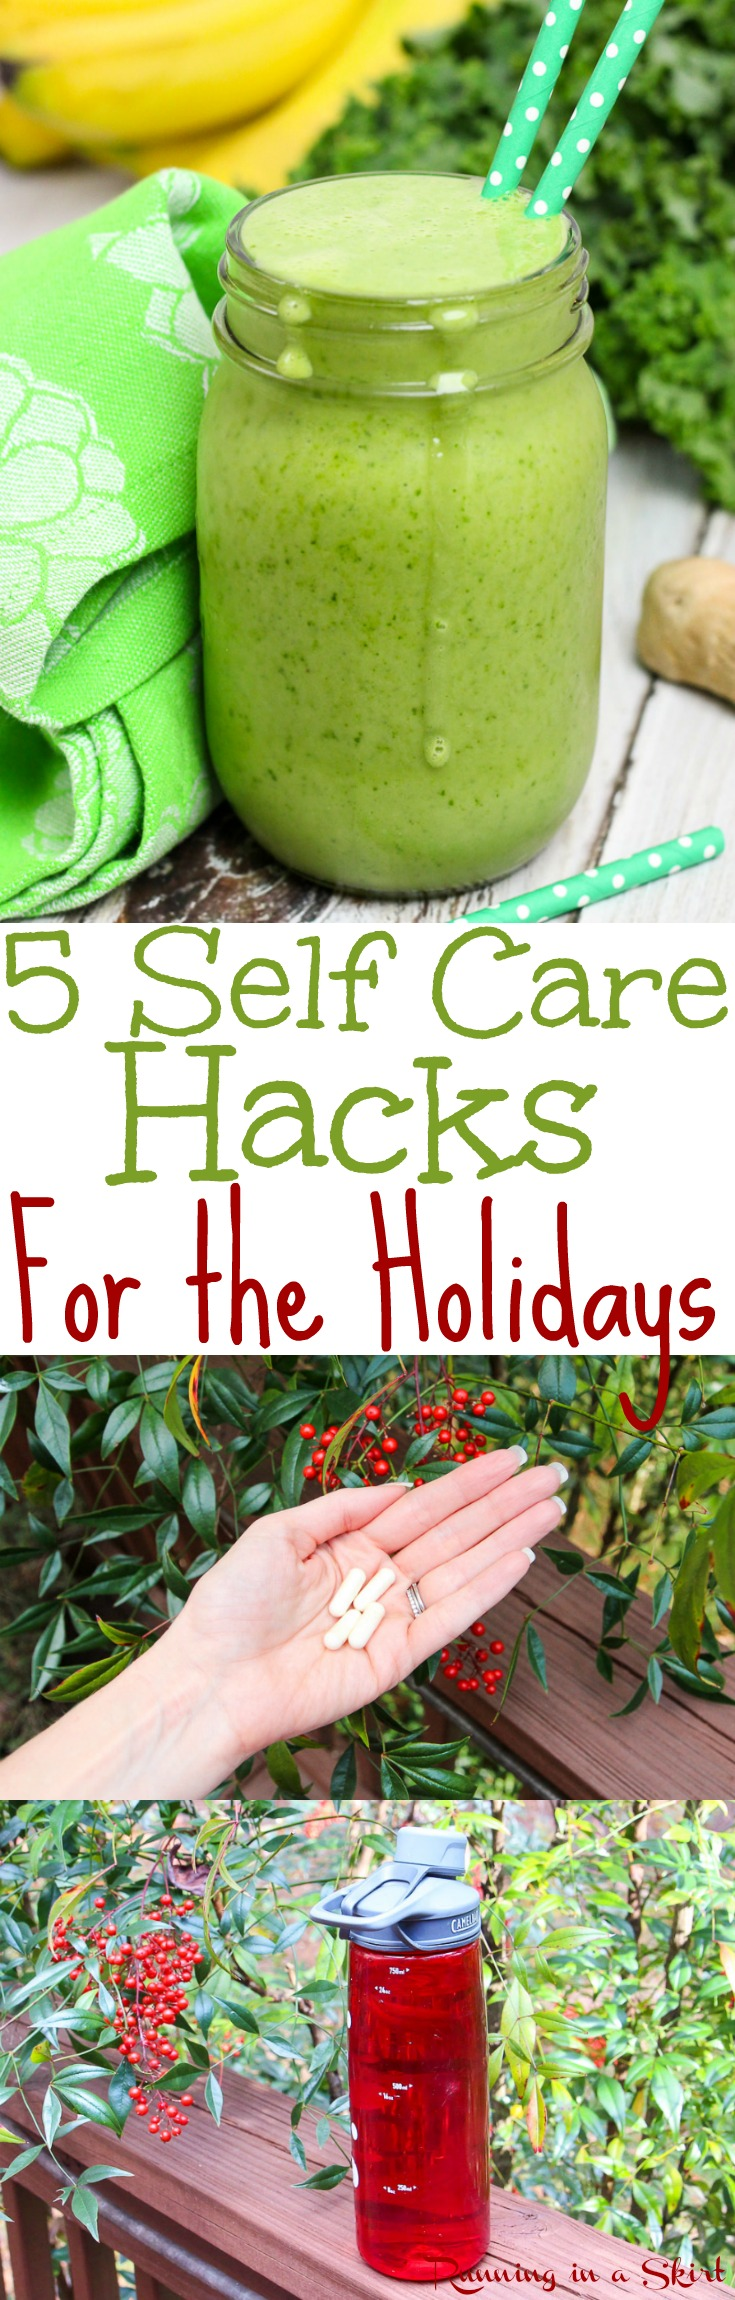 5 Self Care Hacks for This Holiday Season!  The best way and habits to have a healthy holiday this year including food, motivation and simple health tips. . #BeingHumanTakesGuts @renewlife AD via @juliewunder